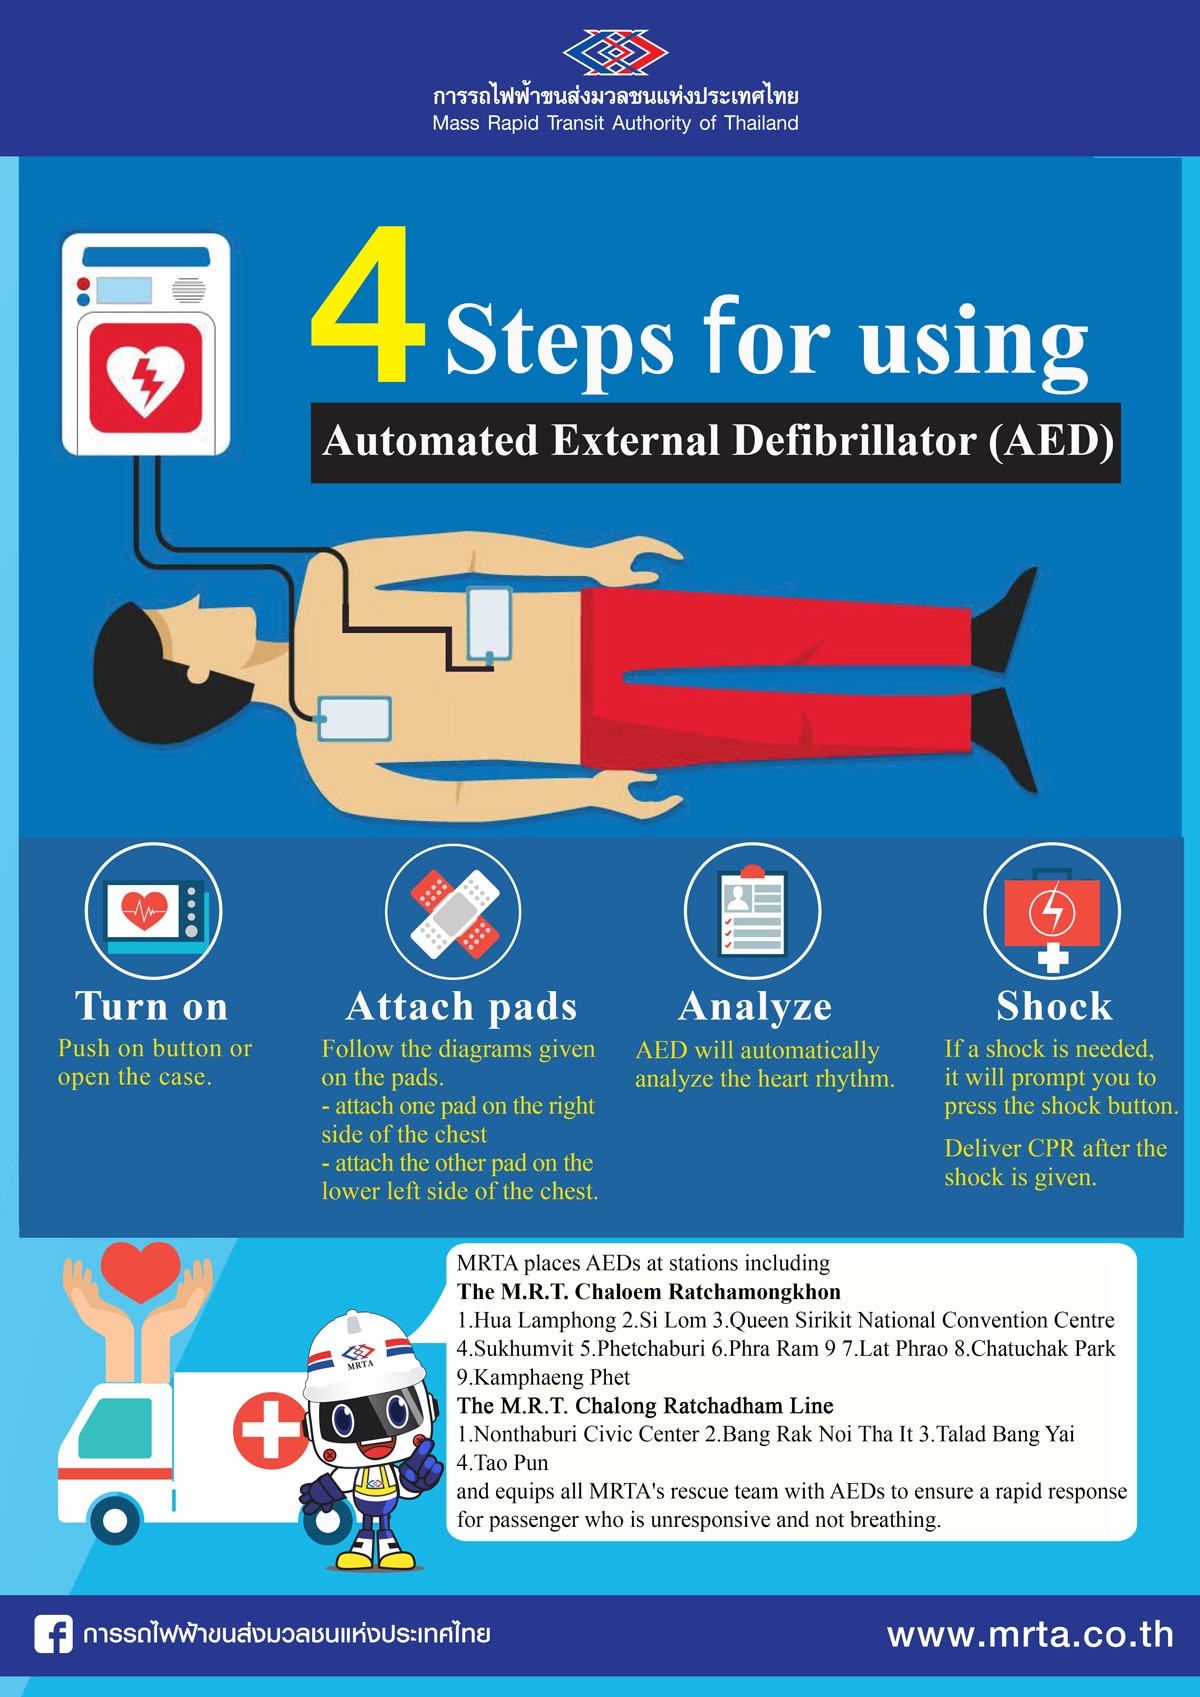 4 steps for using AED